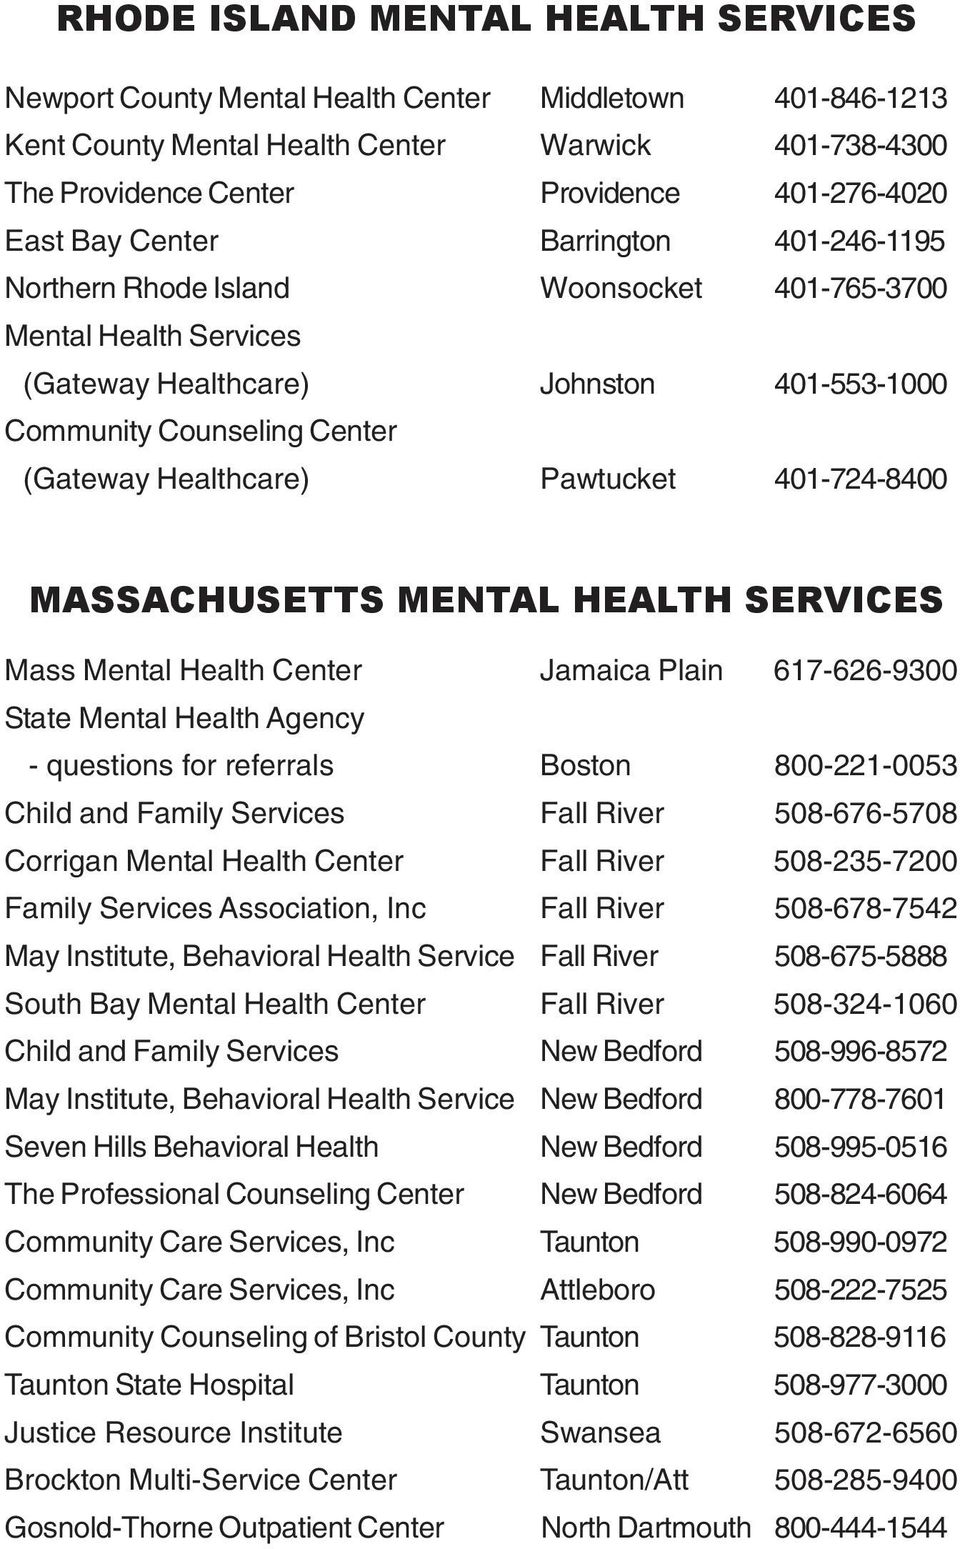 Healthcare) Pawtucket 401-724-8400 MASSACHUSETTS MENTAL HEALTH SERVICES Mass Mental Health Center Jamaica Plain 617-626-9300 State Mental Health Agency - questions for referrals Boston 800-221-0053